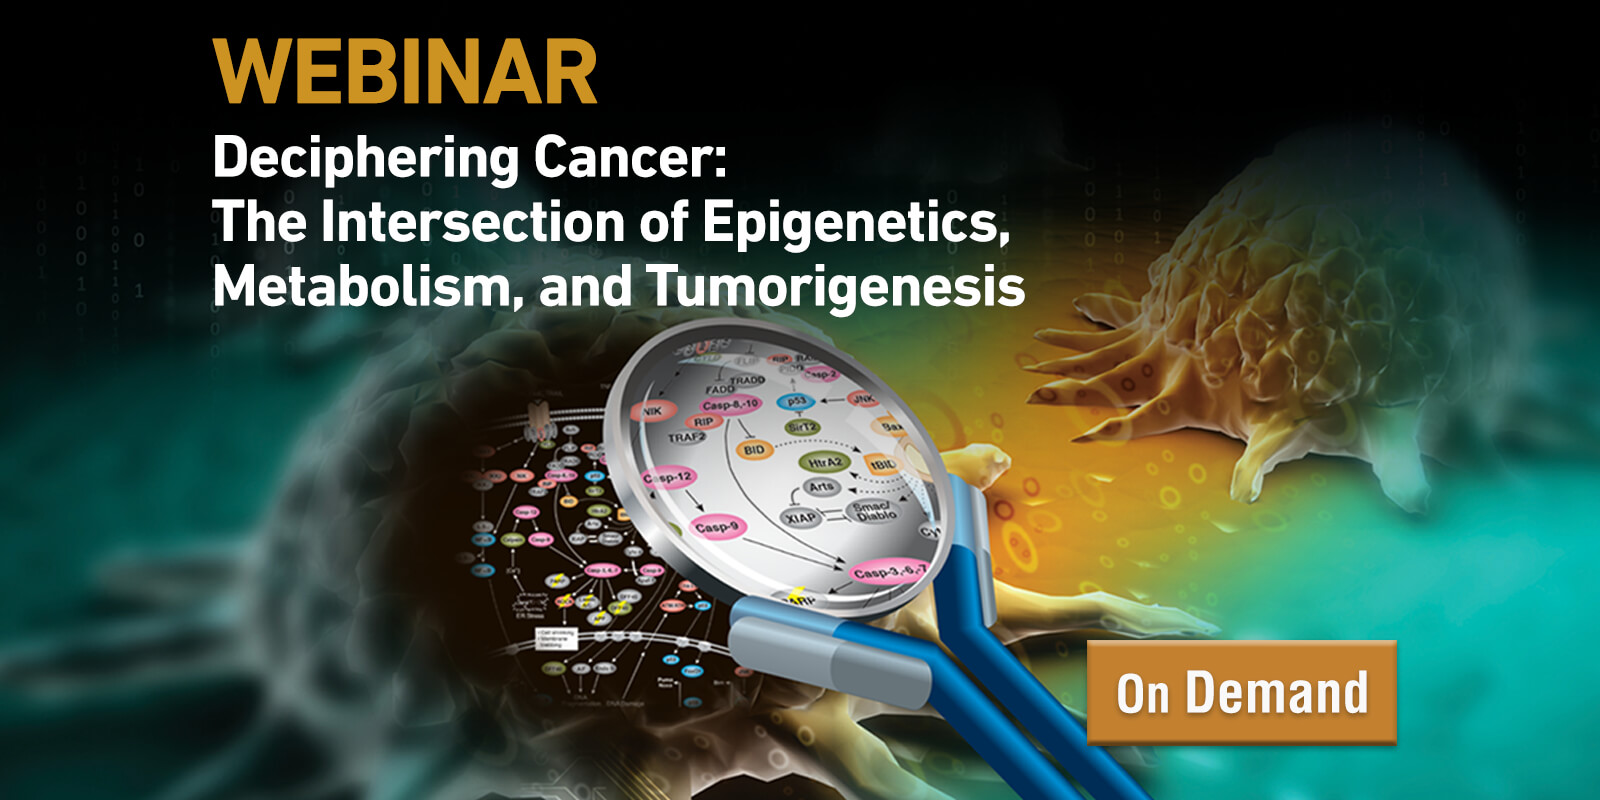 Deciphering Cancer Webinar from CST